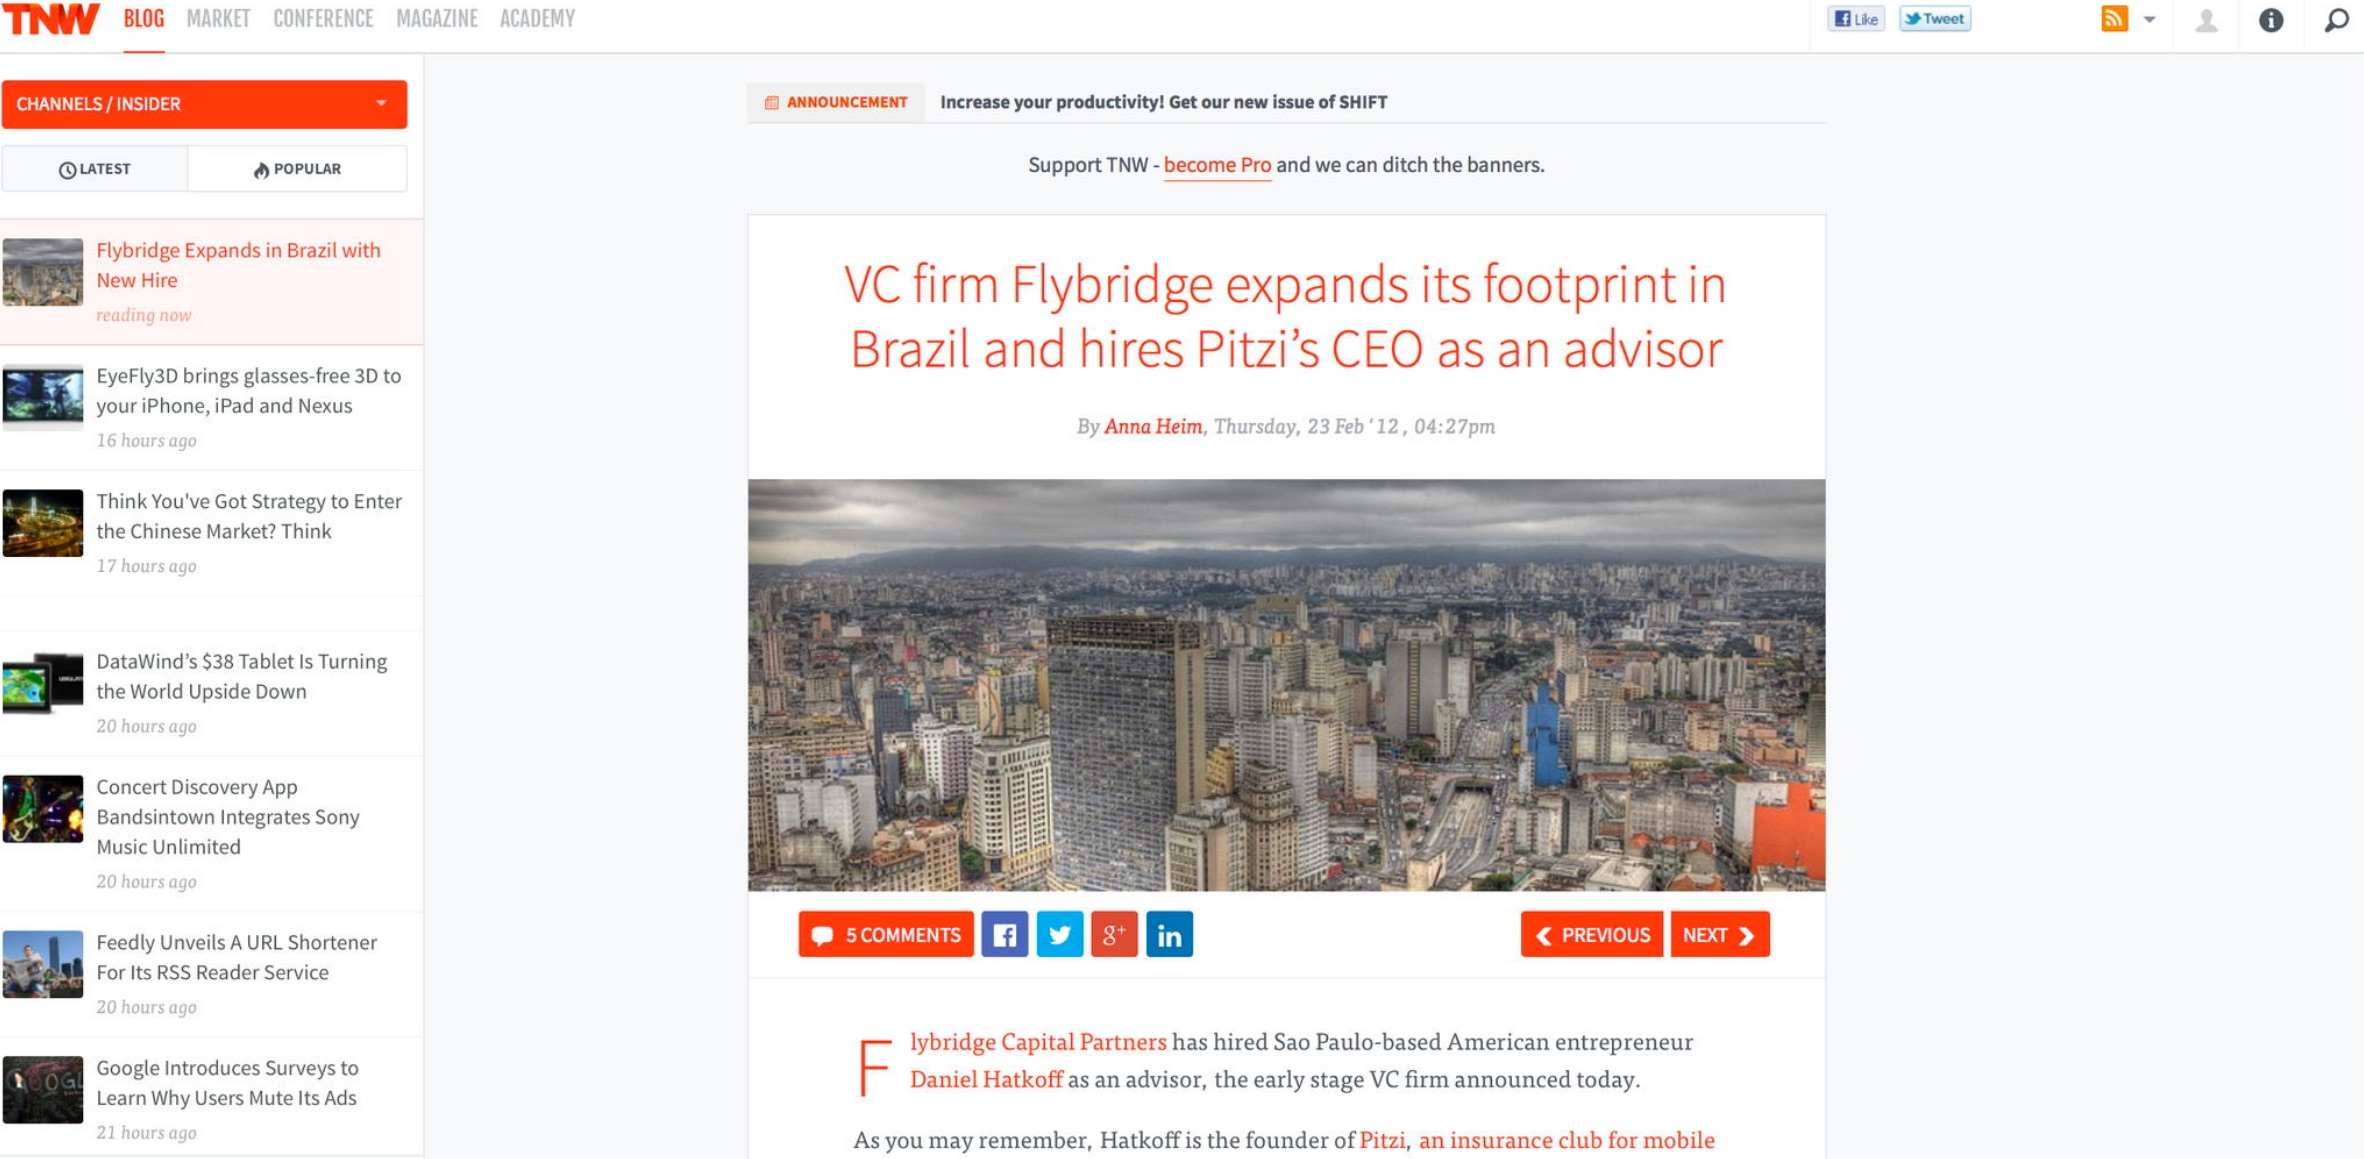 http://thenextweb.com/insider/2012/02/23/vc-firm-flybridge-expands-its-footprint-in-brazil-and-hires-pitzis-ceo-as-an-advisor/#!sxrS3